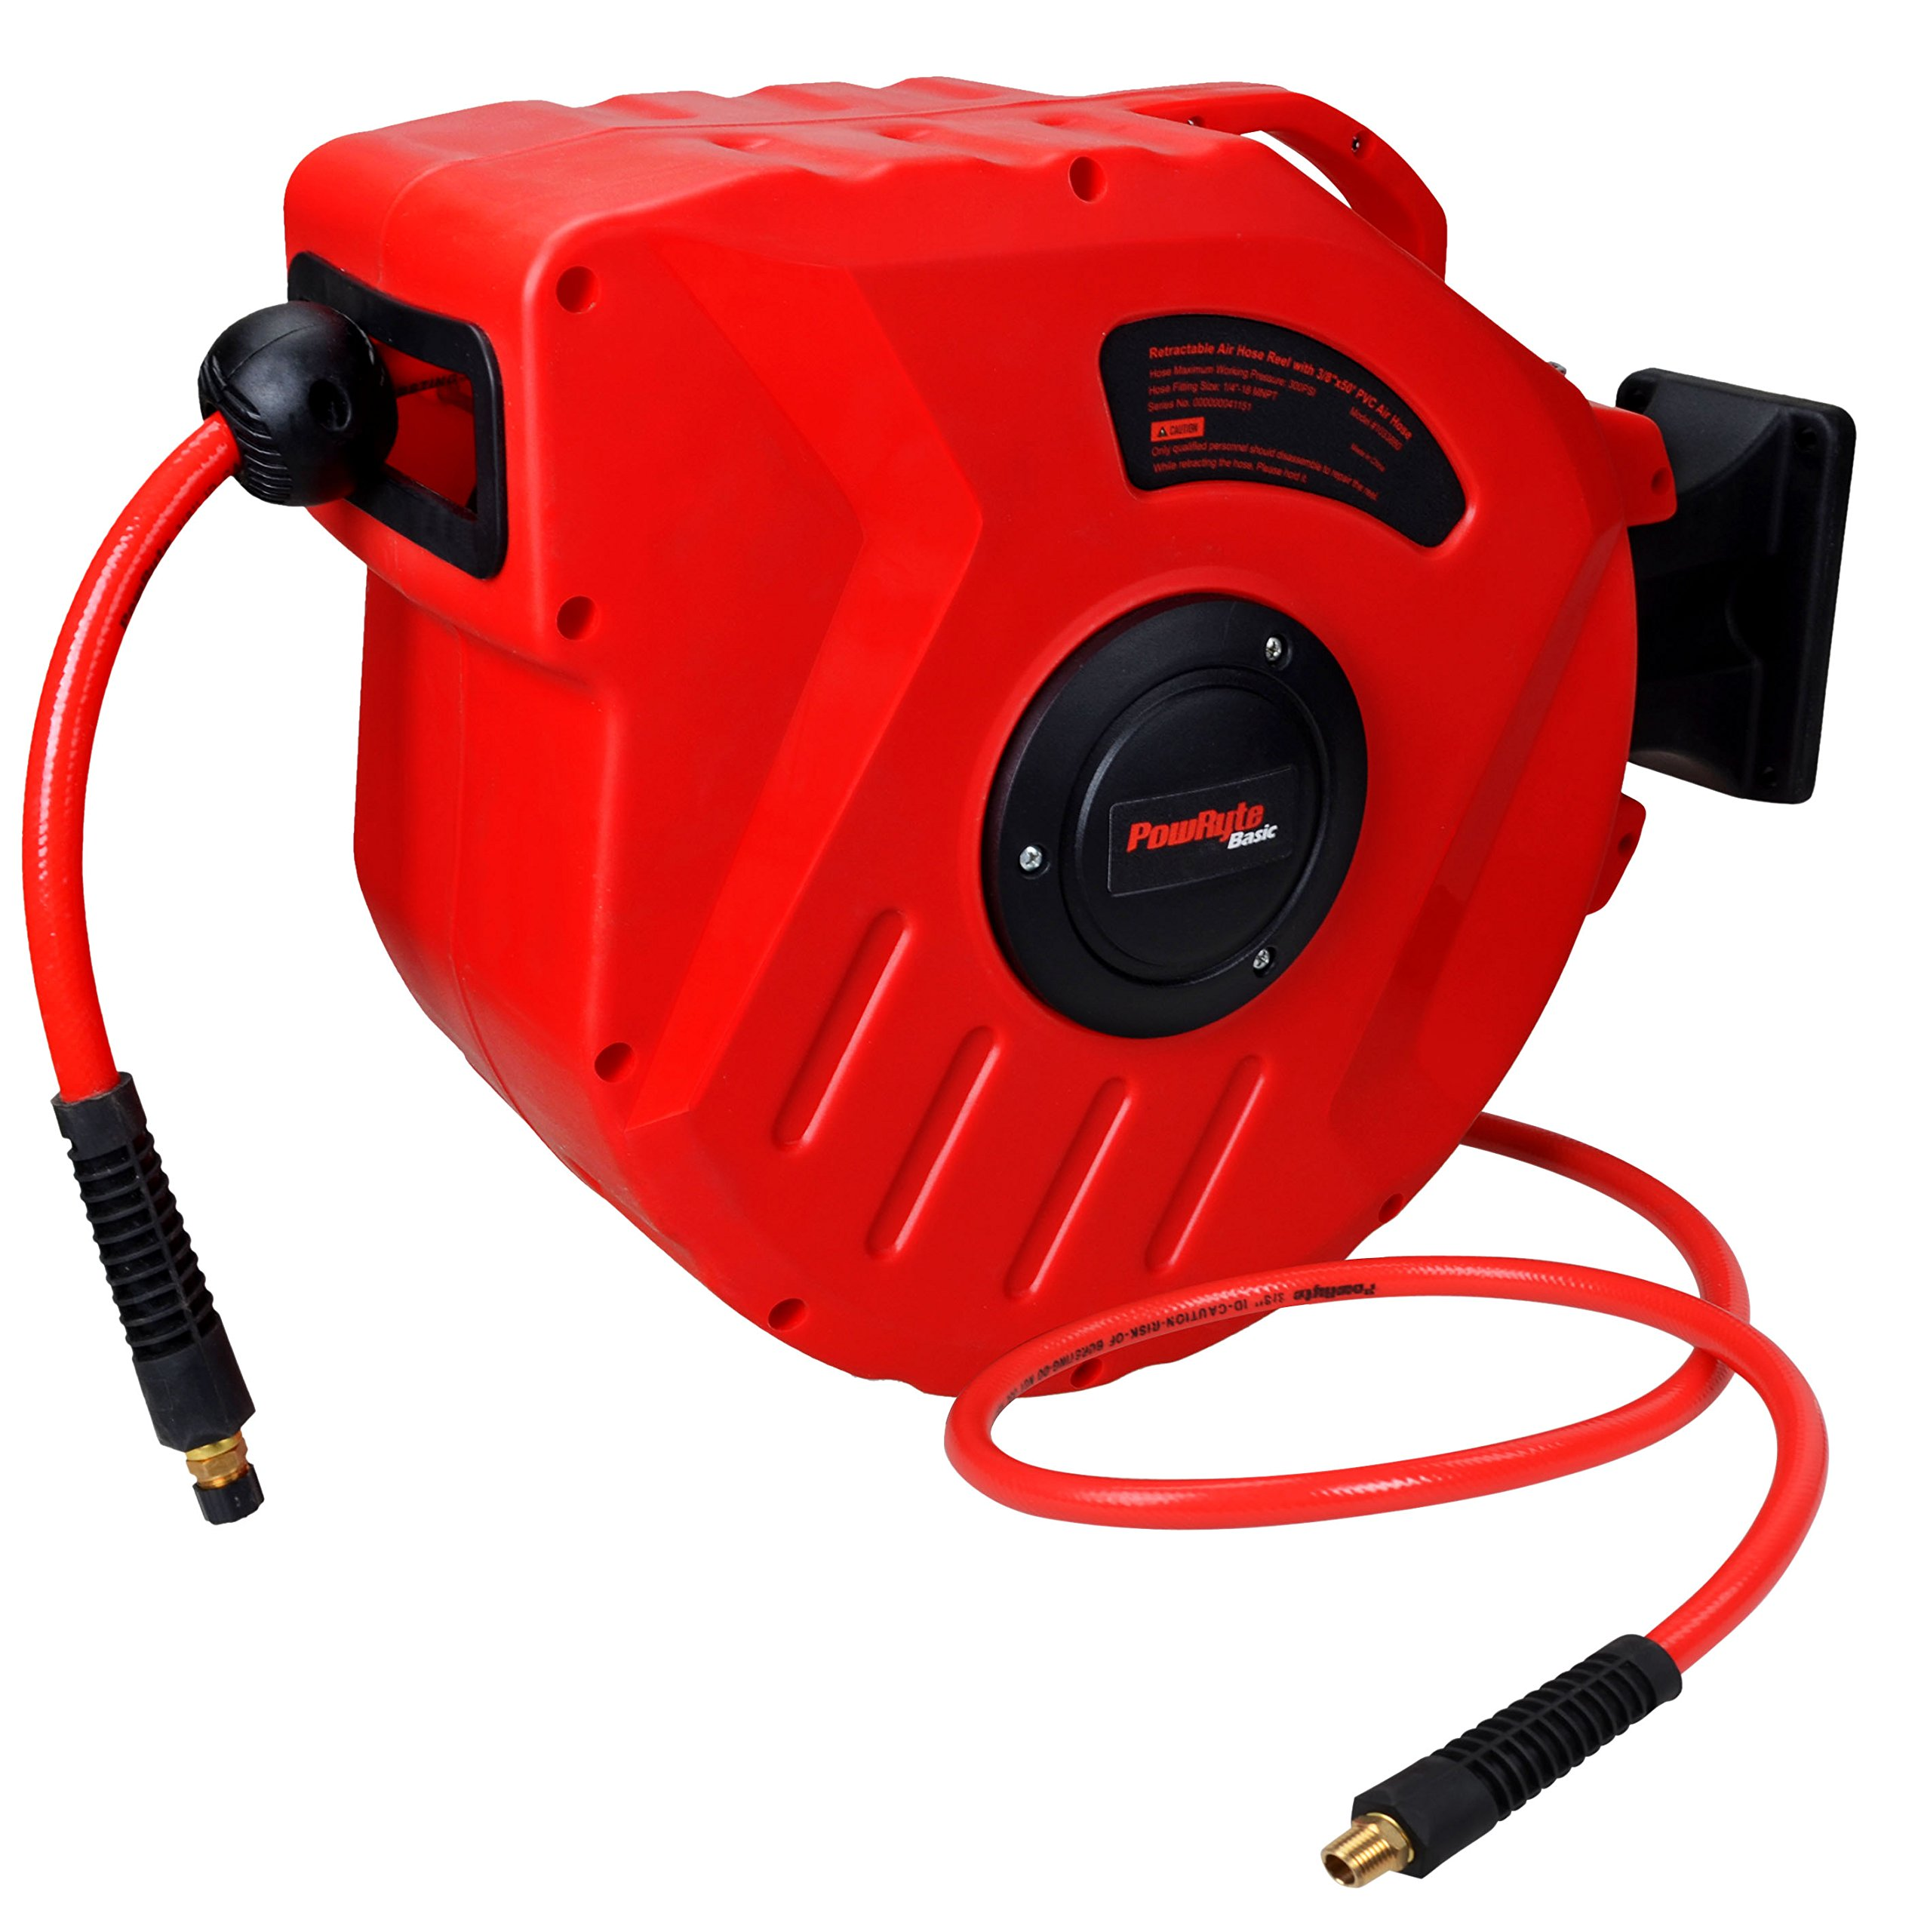 PowRyte Retractable Air Hose Reel with 3/8-Inch by 50-Feet PVC Hose